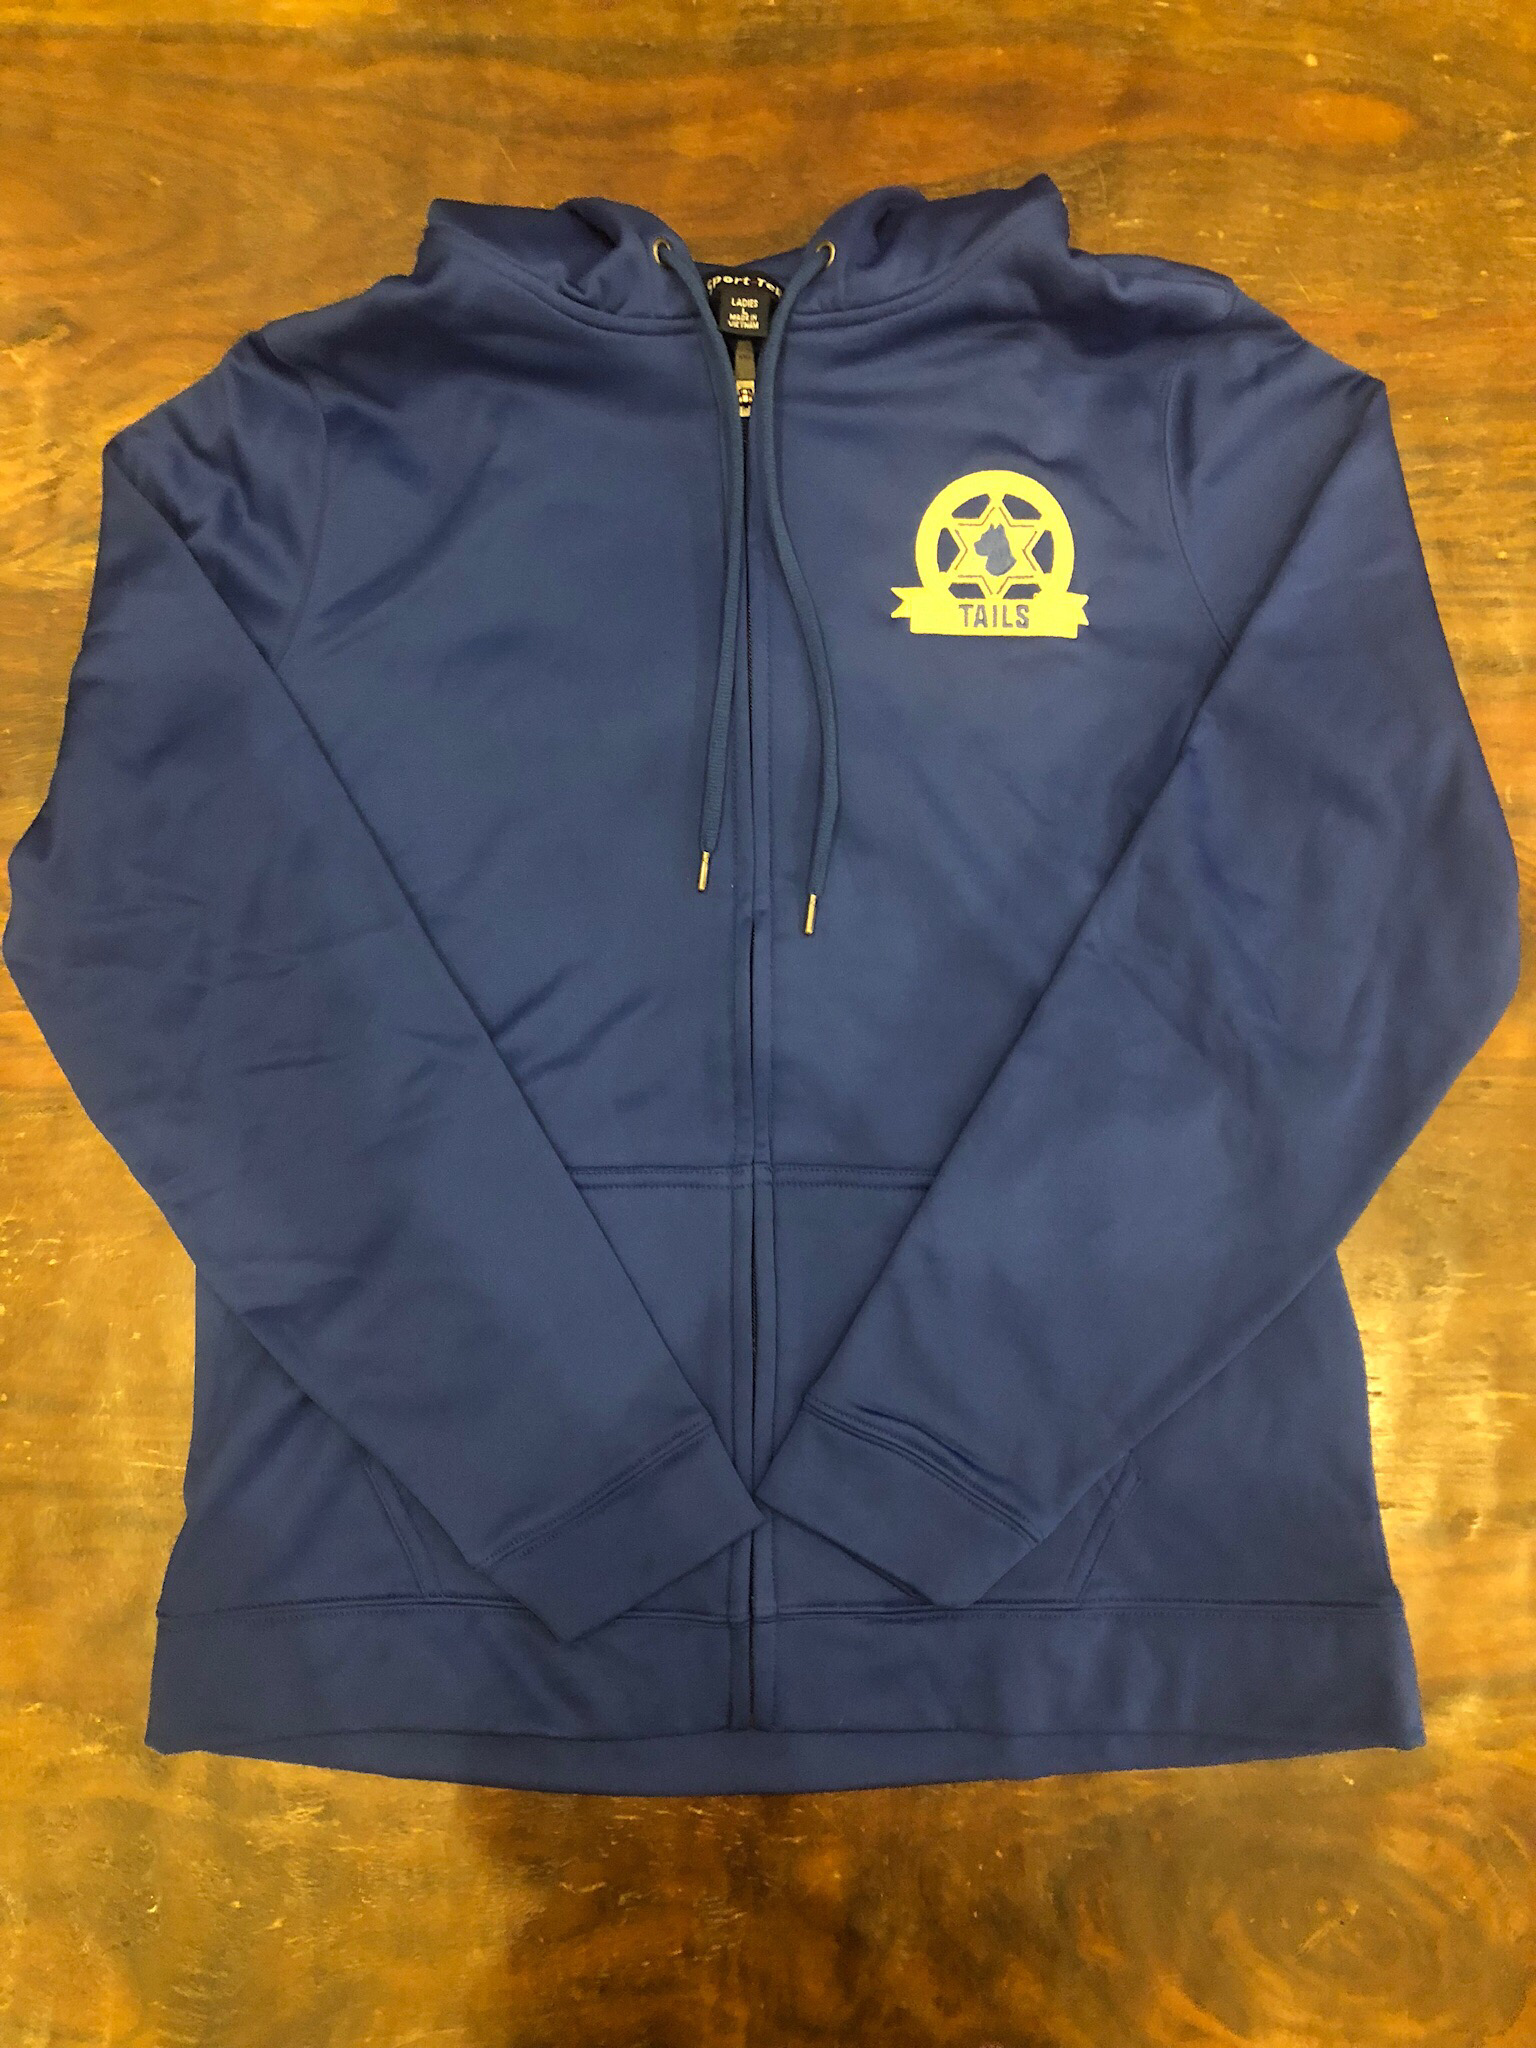 Blue TAILS hooded, zip front jacket - XL 55712